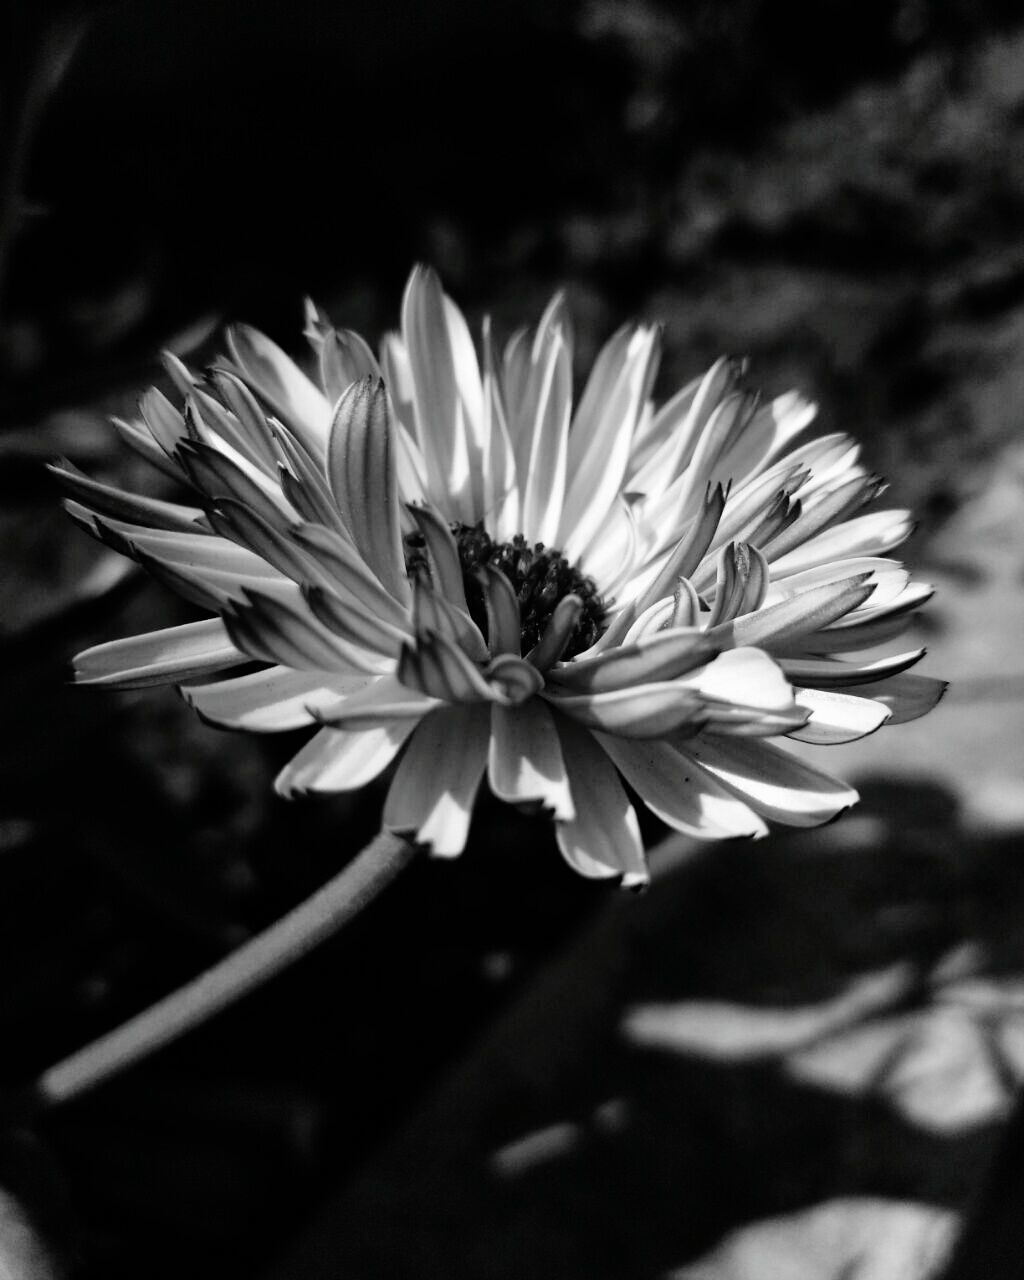 flower, petal, fragility, nature, freshness, growth, beauty in nature, flower head, plant, blooming, close-up, no people, outdoors, day